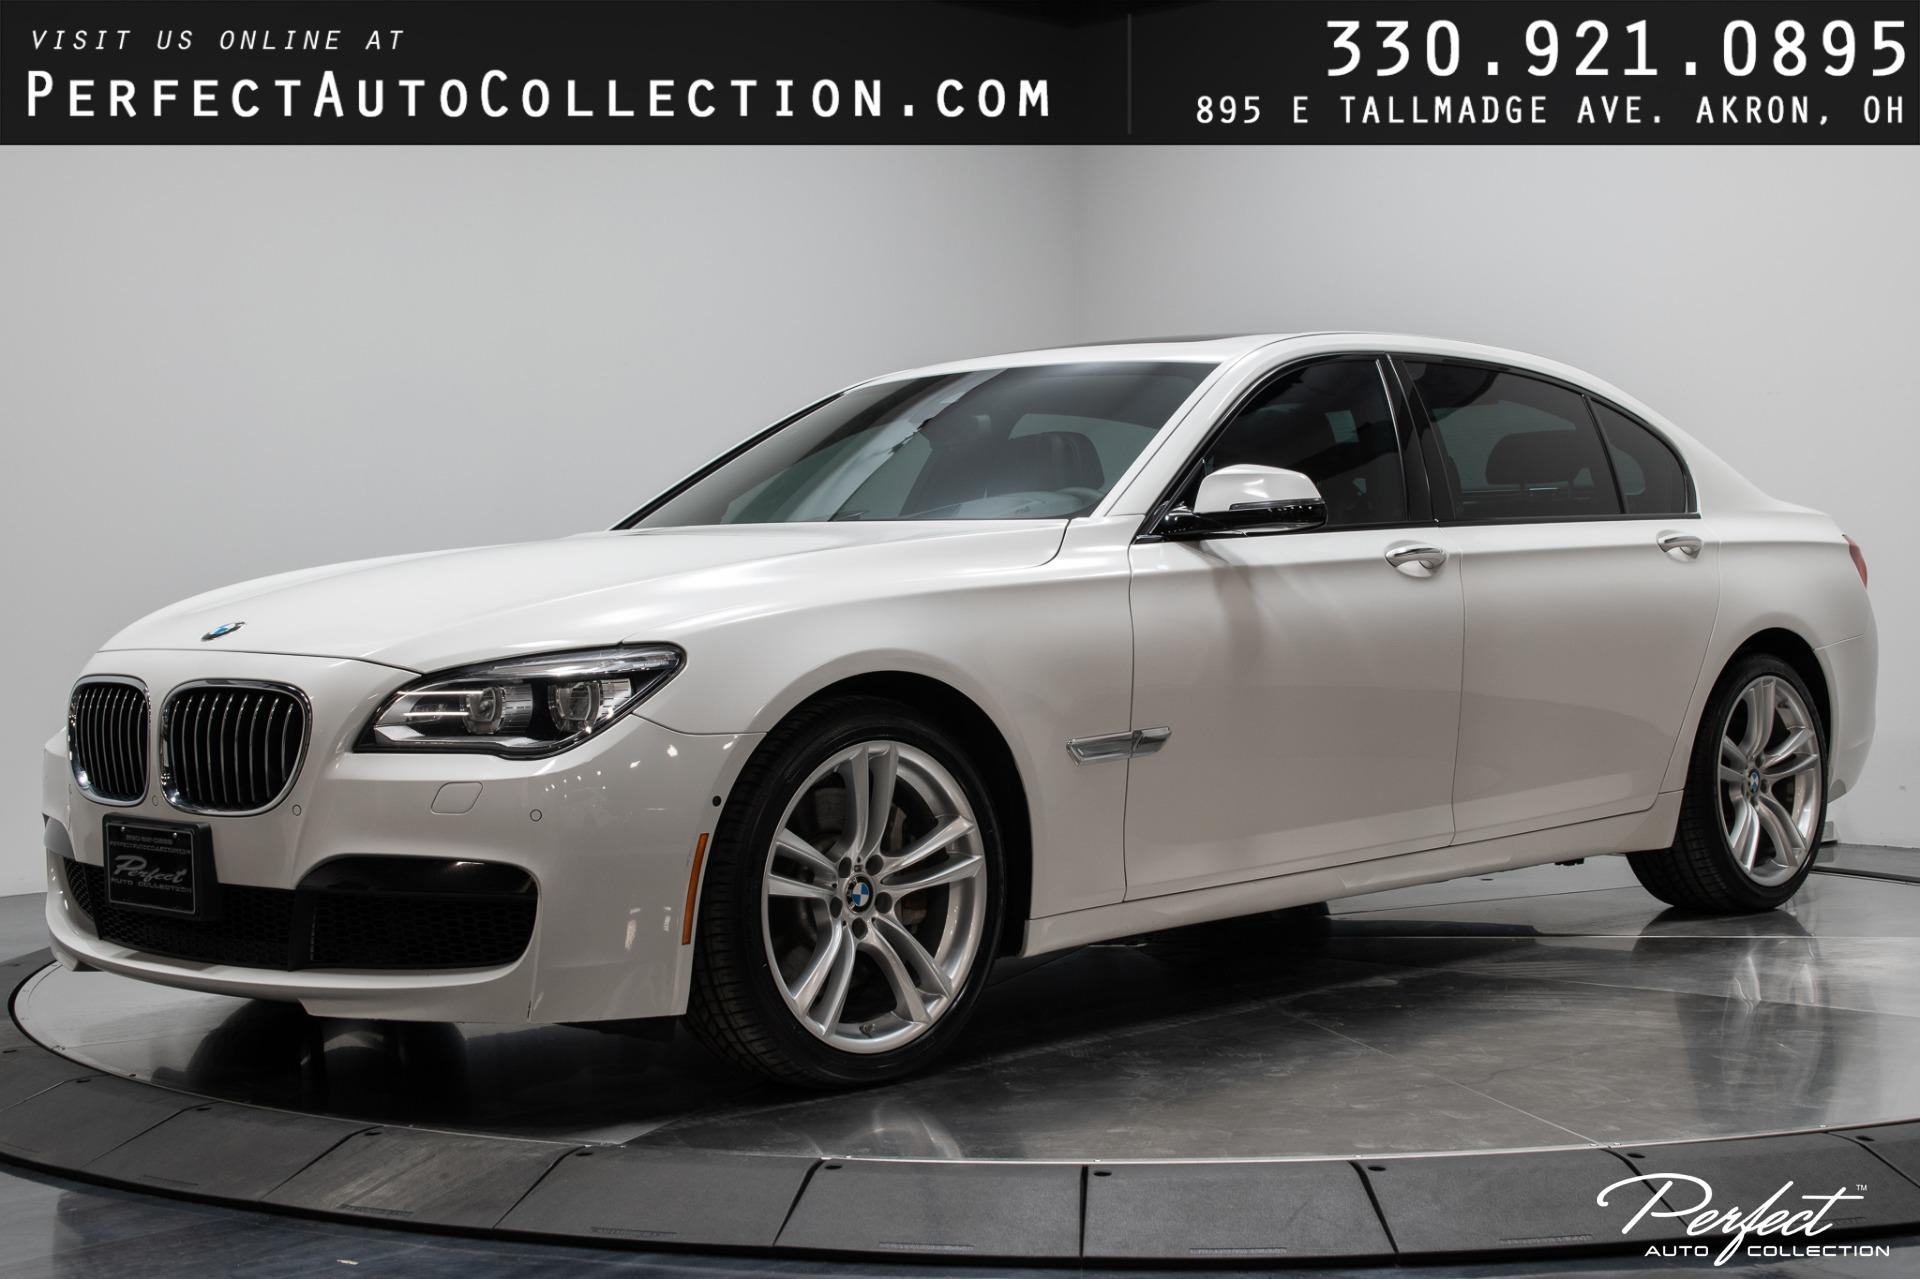 2014 BMW 7 Series 750Li xDrive for sale $28,495 at Perfect Auto Collection in Akron OH 44310 1